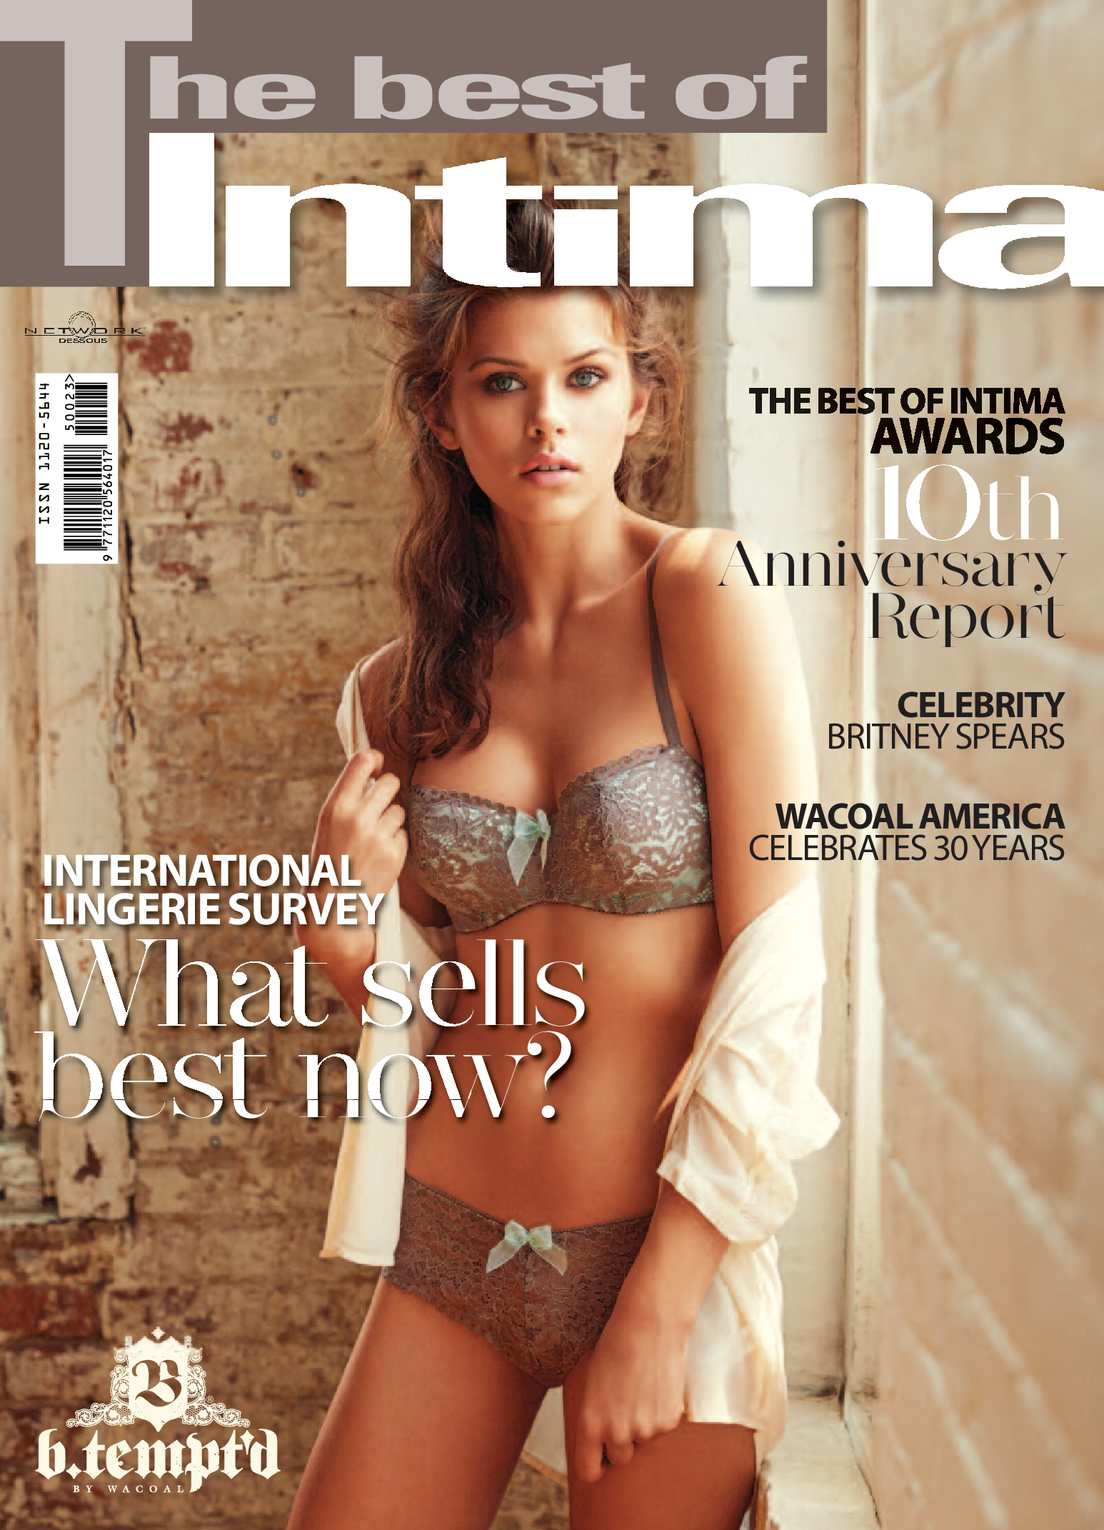 7f1e9e0dc94 Calaméo - THE BEST OF INTIMA February 2015